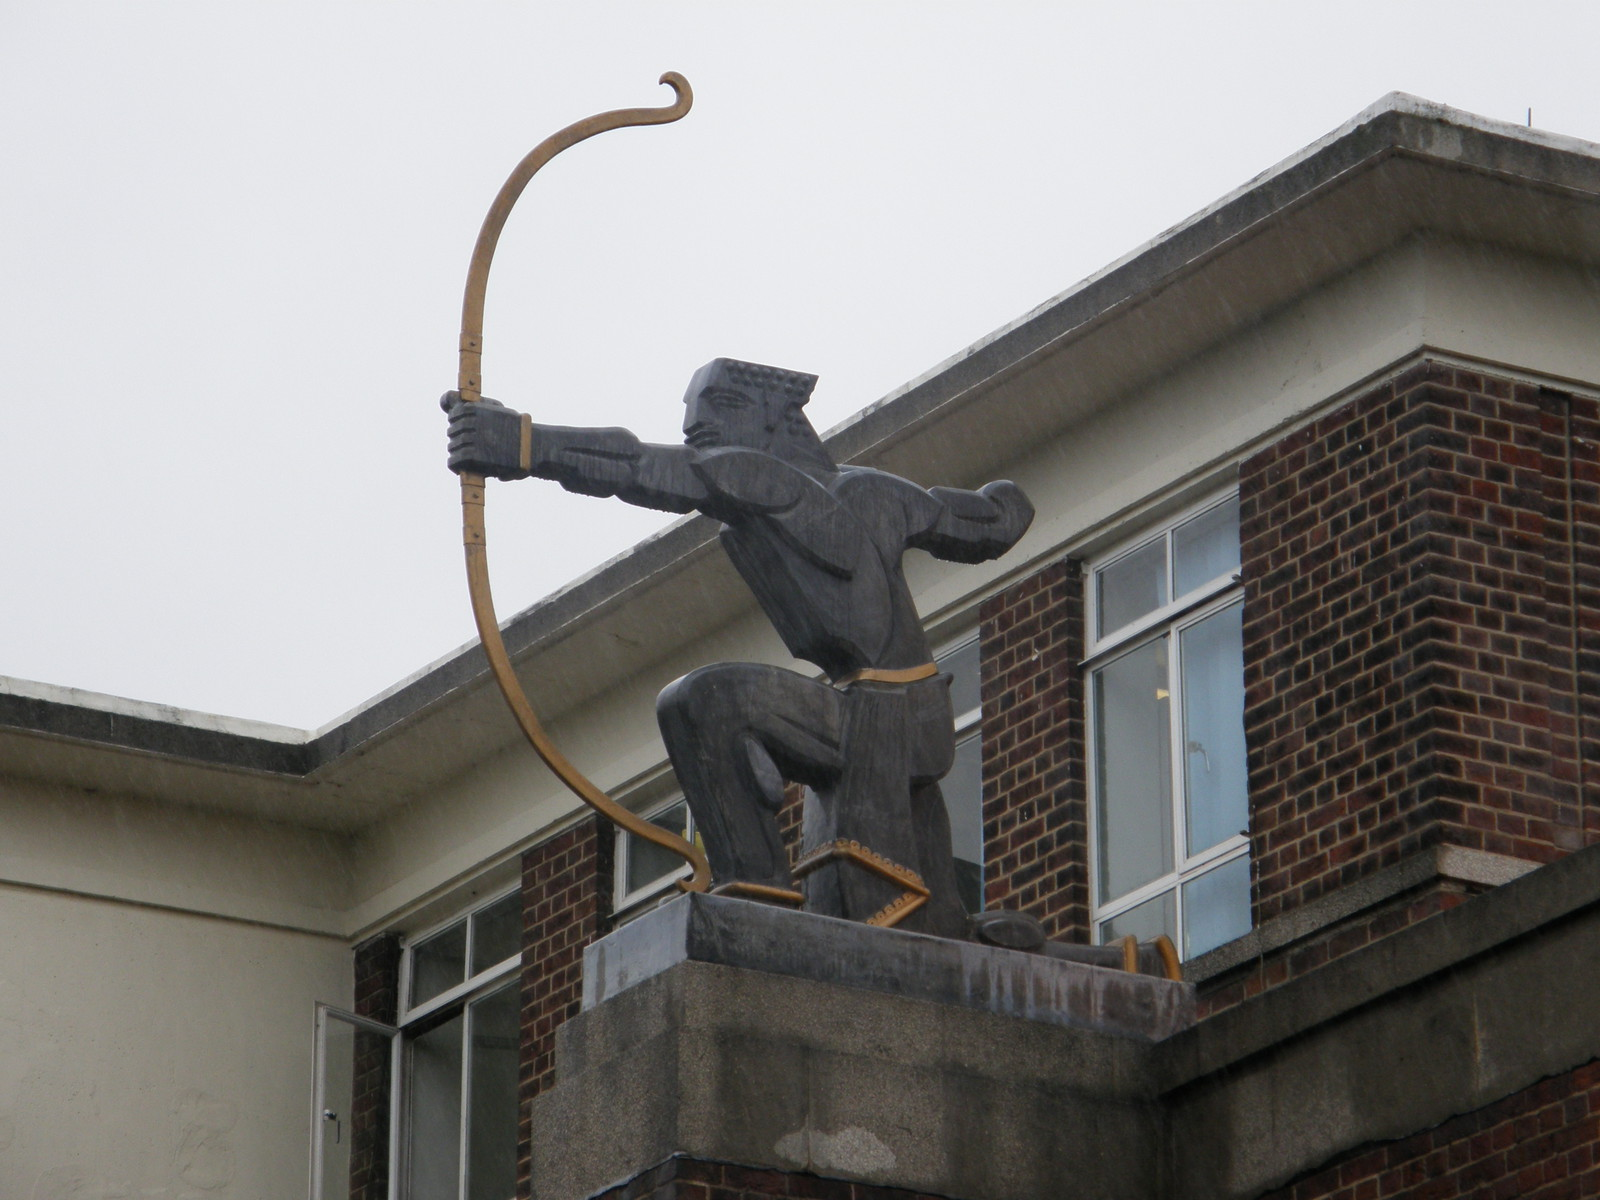 The archer on East Finchley station